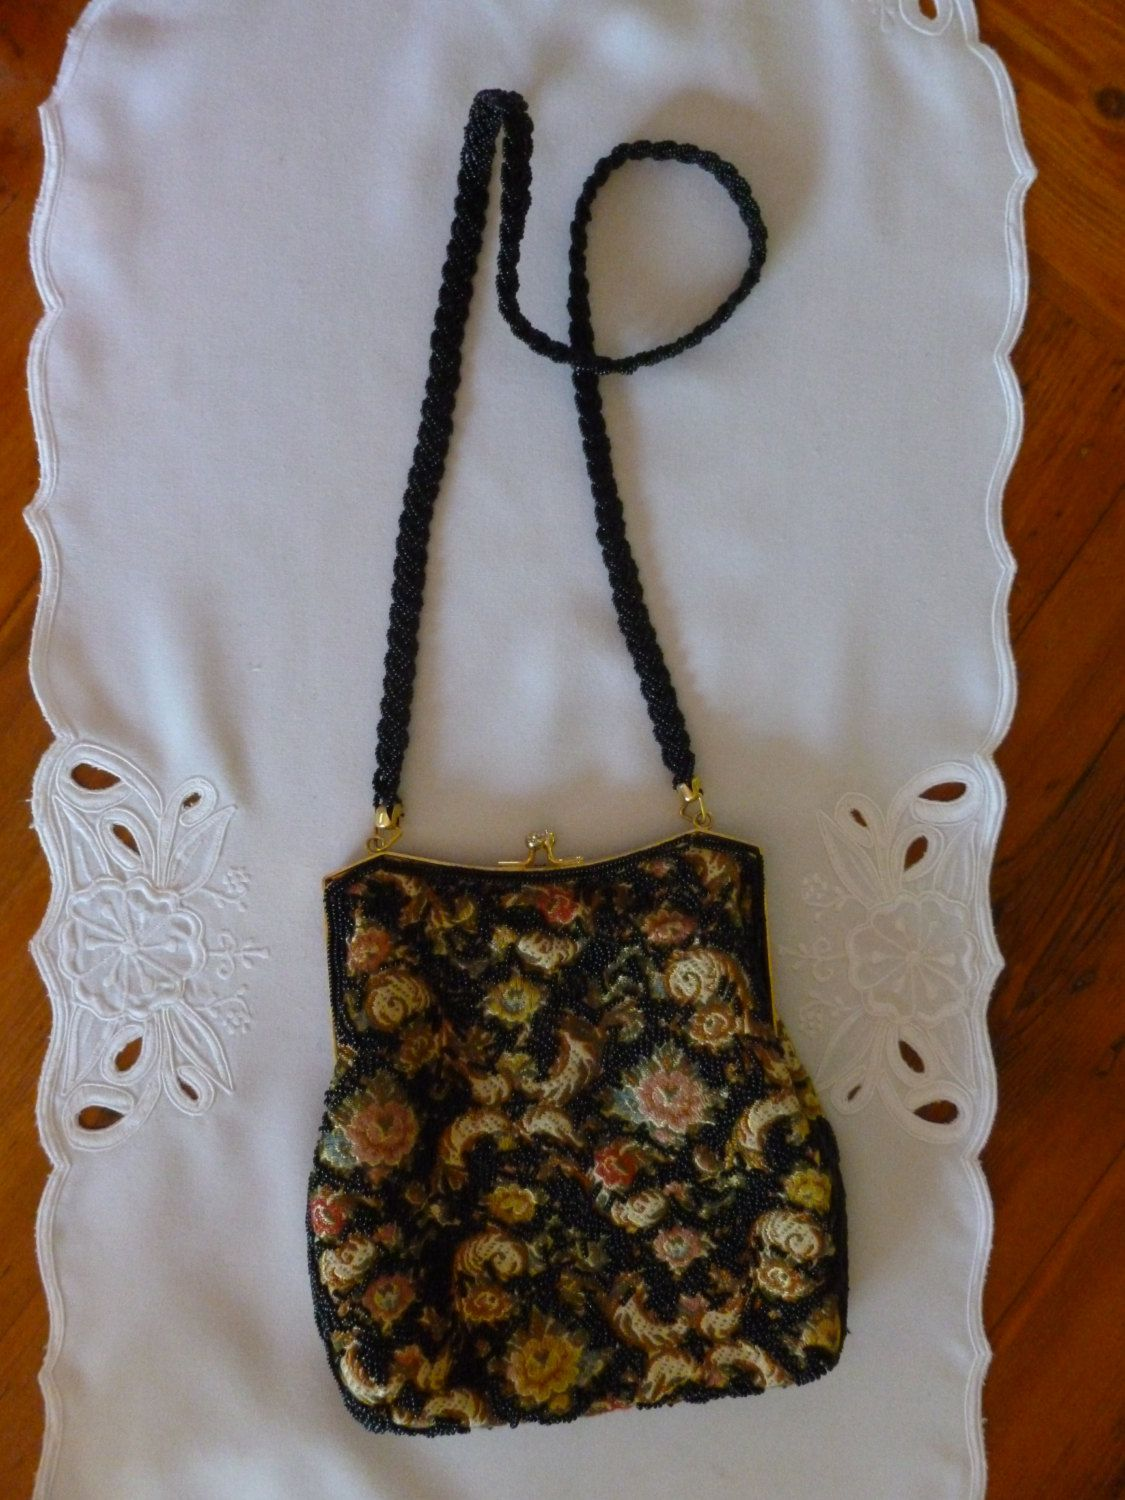 Vintage Beaded Floral Tapestry Evening Bag with Black Beaded Strap and Gold Tone Clasp, Vintage Bag, Tapestry Bag, Christmas Gift